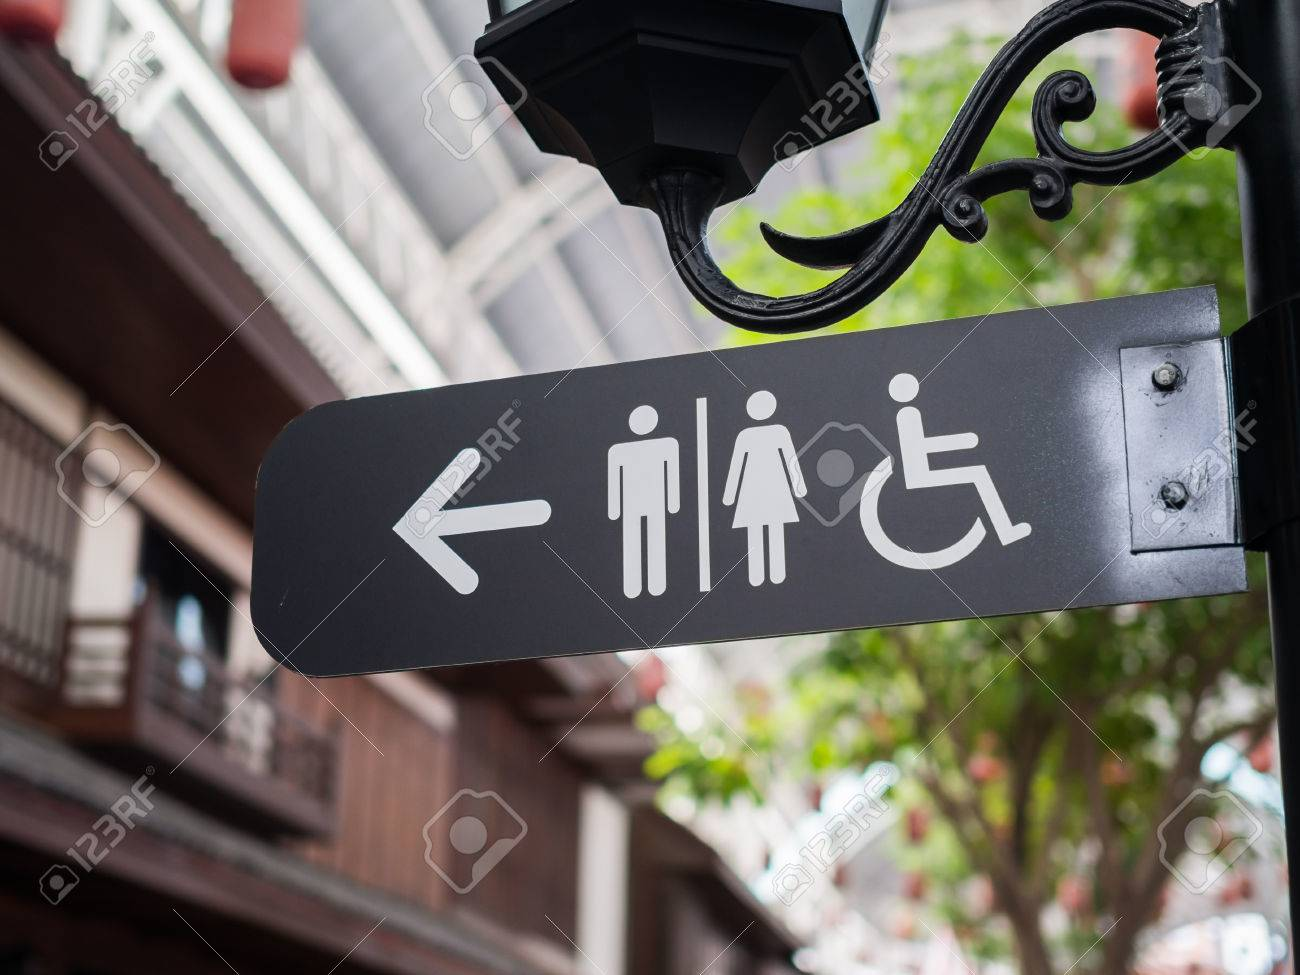 Public restroom signs with a disabled access symbol - 46172959